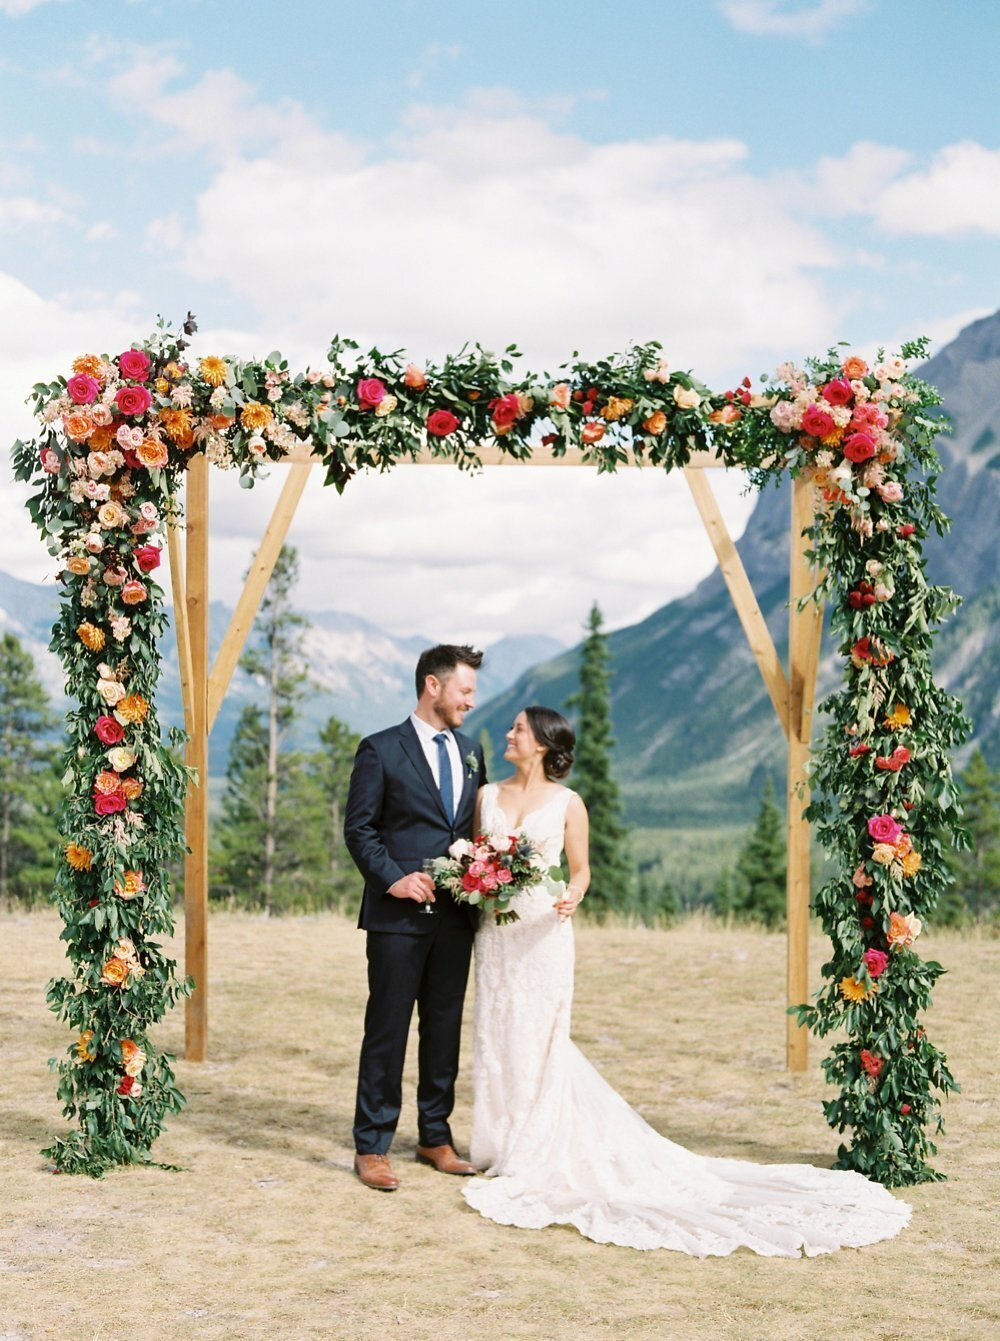 Banff wedding arch floral inspiration